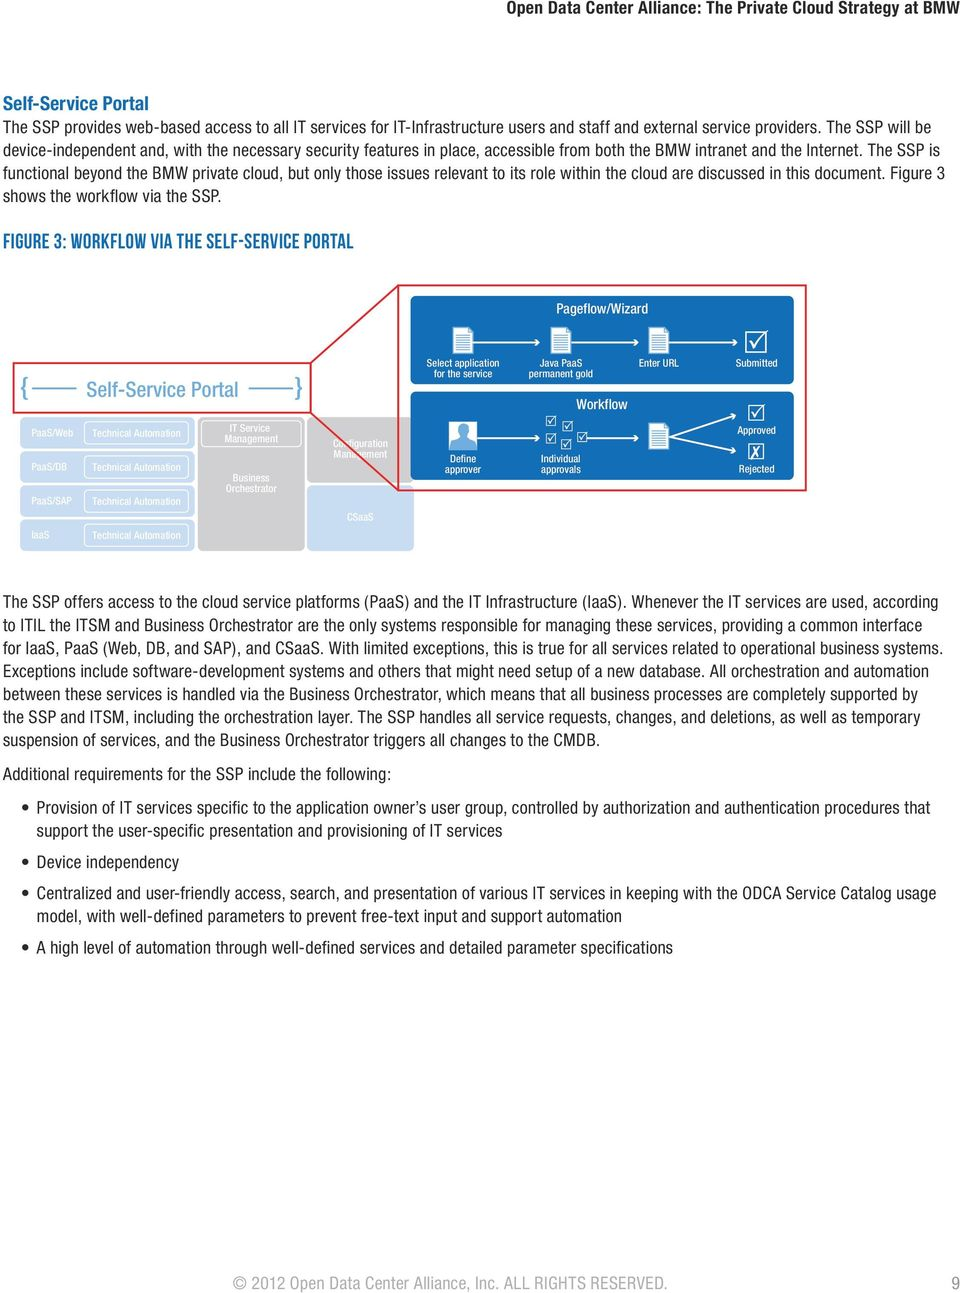 The SSP is functional beyond the BMW private cloud, but only those issues relevant to its role within the cloud are discussed in this document. Figure 3 shows the workflow via the SSP.